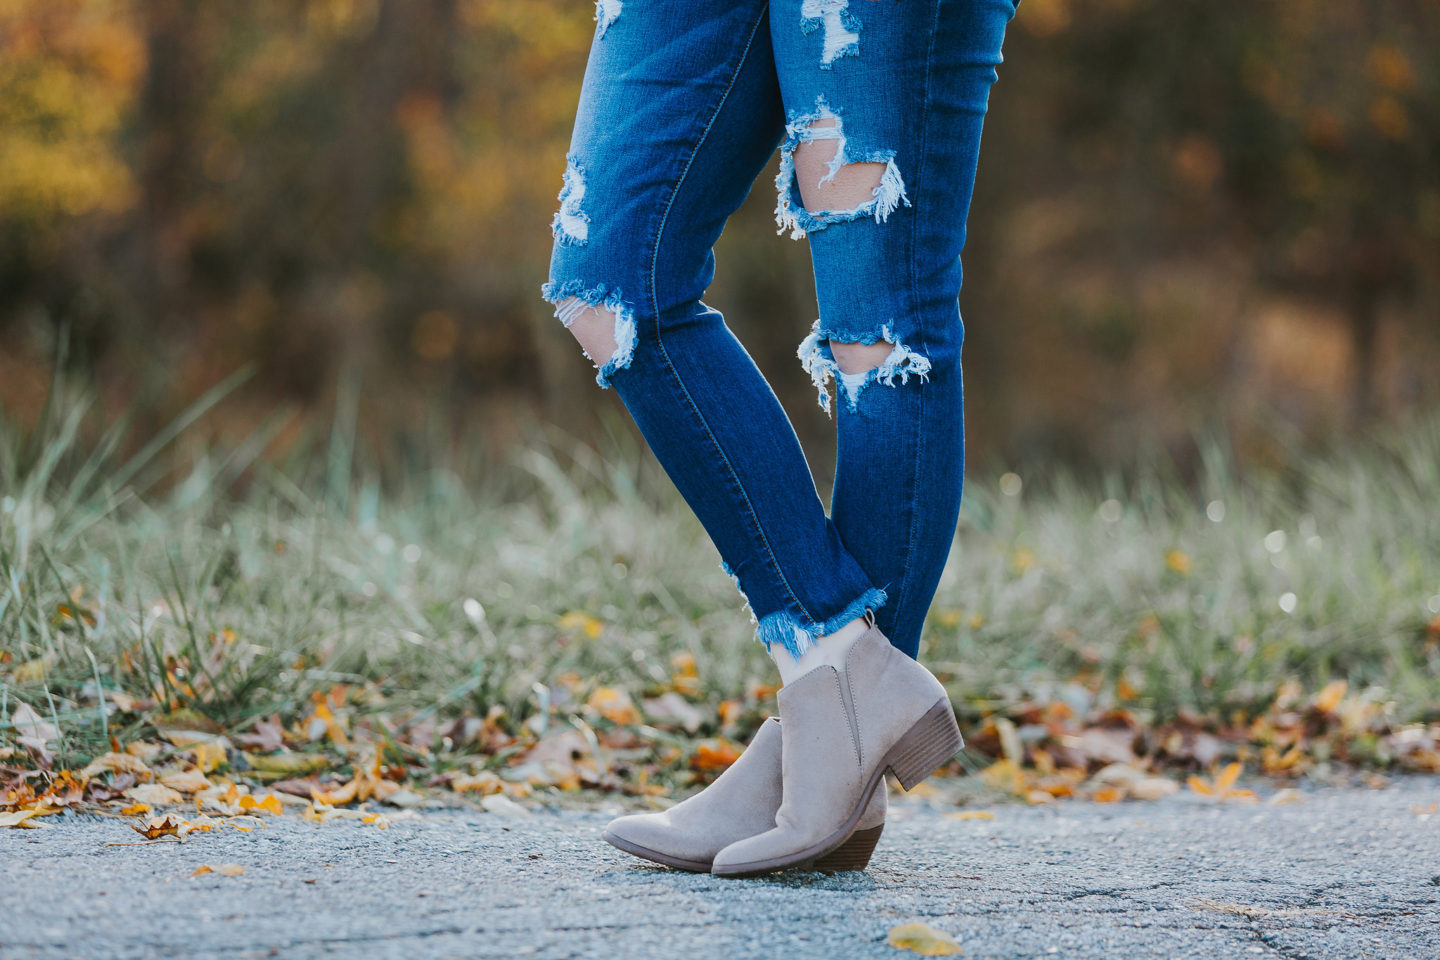 The Ultimate Shoe Guide to Get You Through Winter